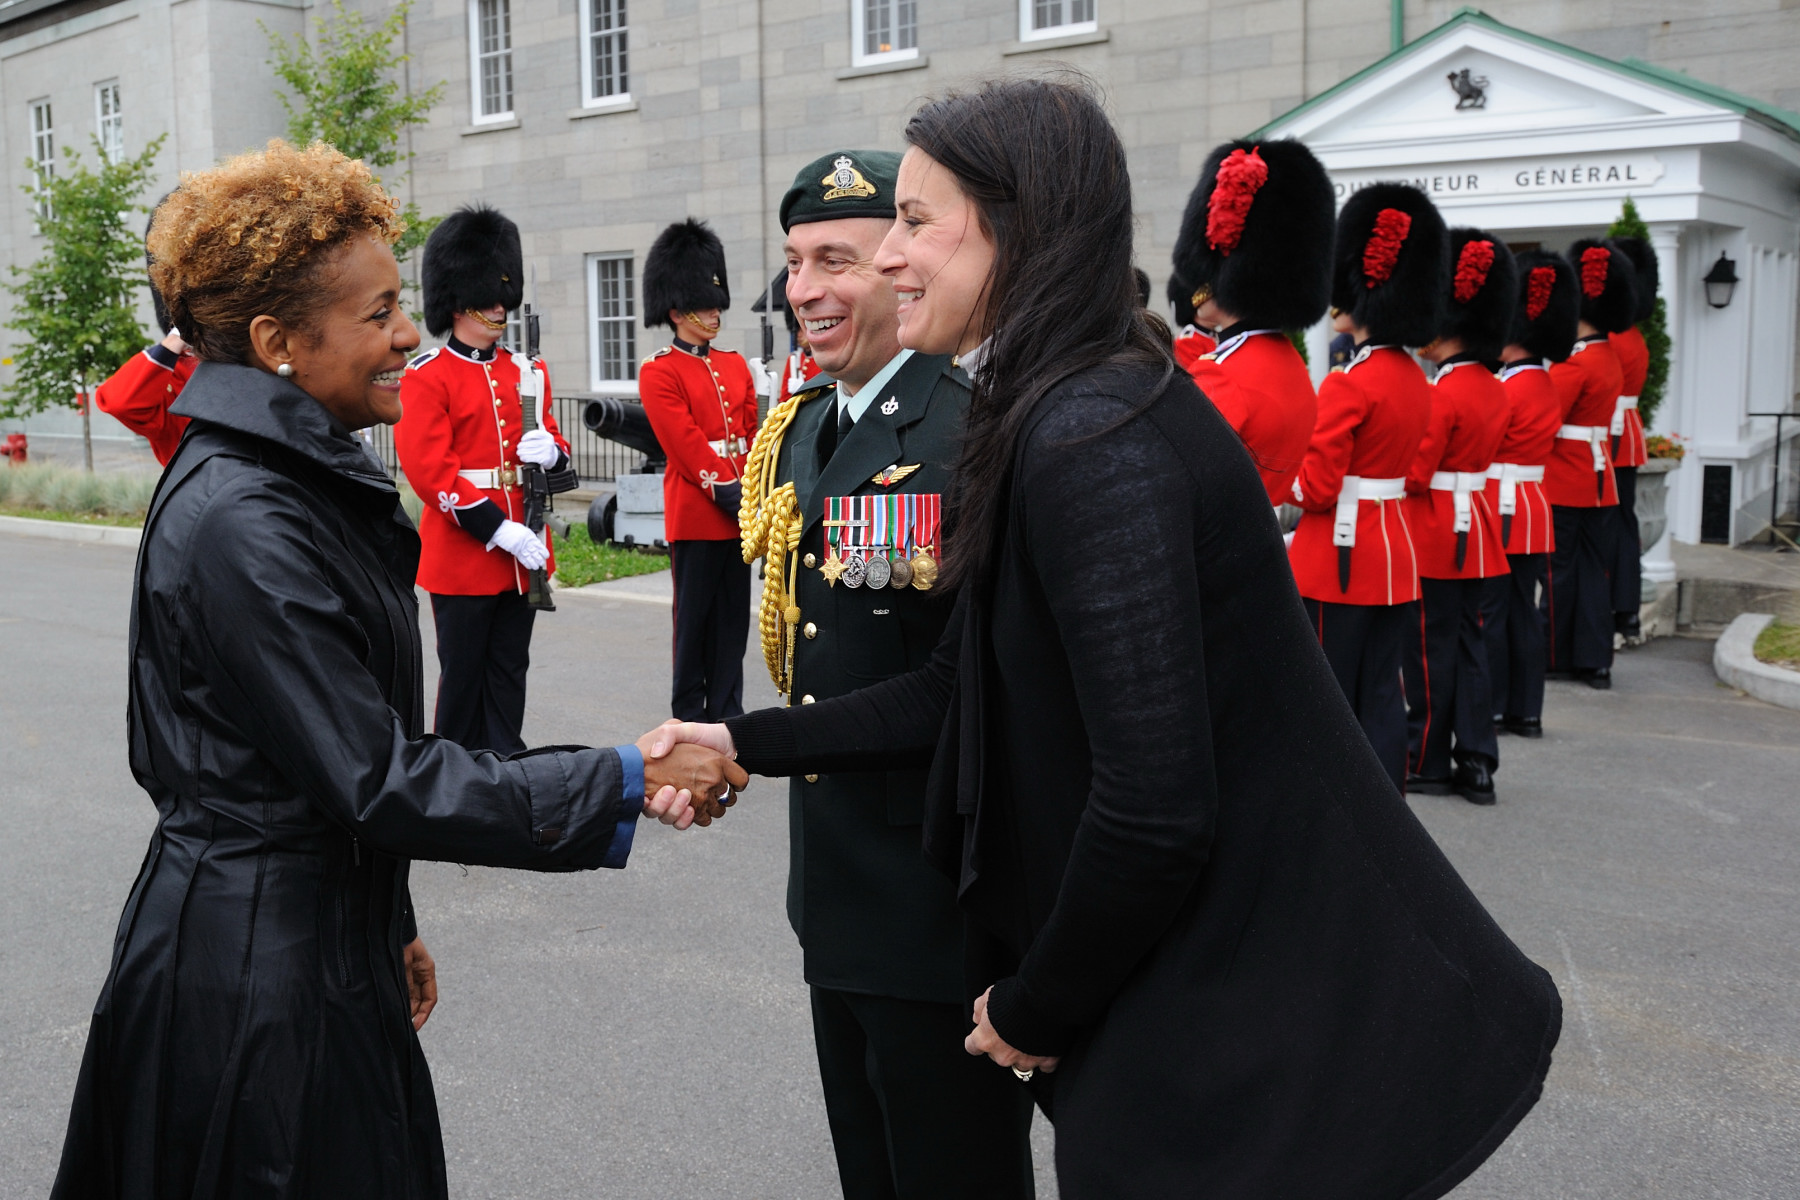 Her Excellency also thanked the Canadian Forces for their outstanding work on the grounds.